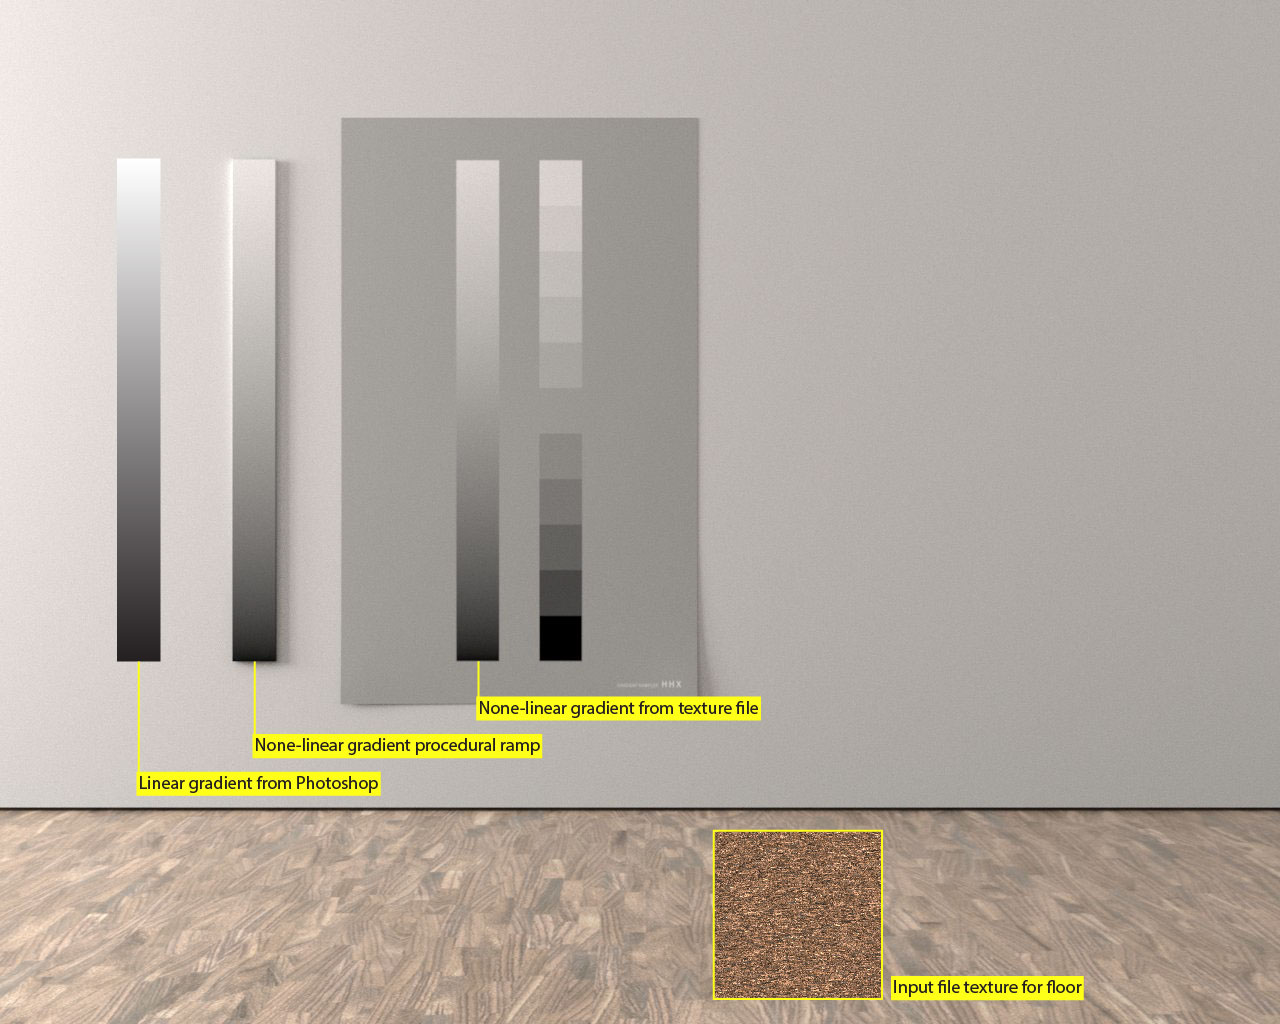 006 vray for maya linear workflow guide hanhanxue